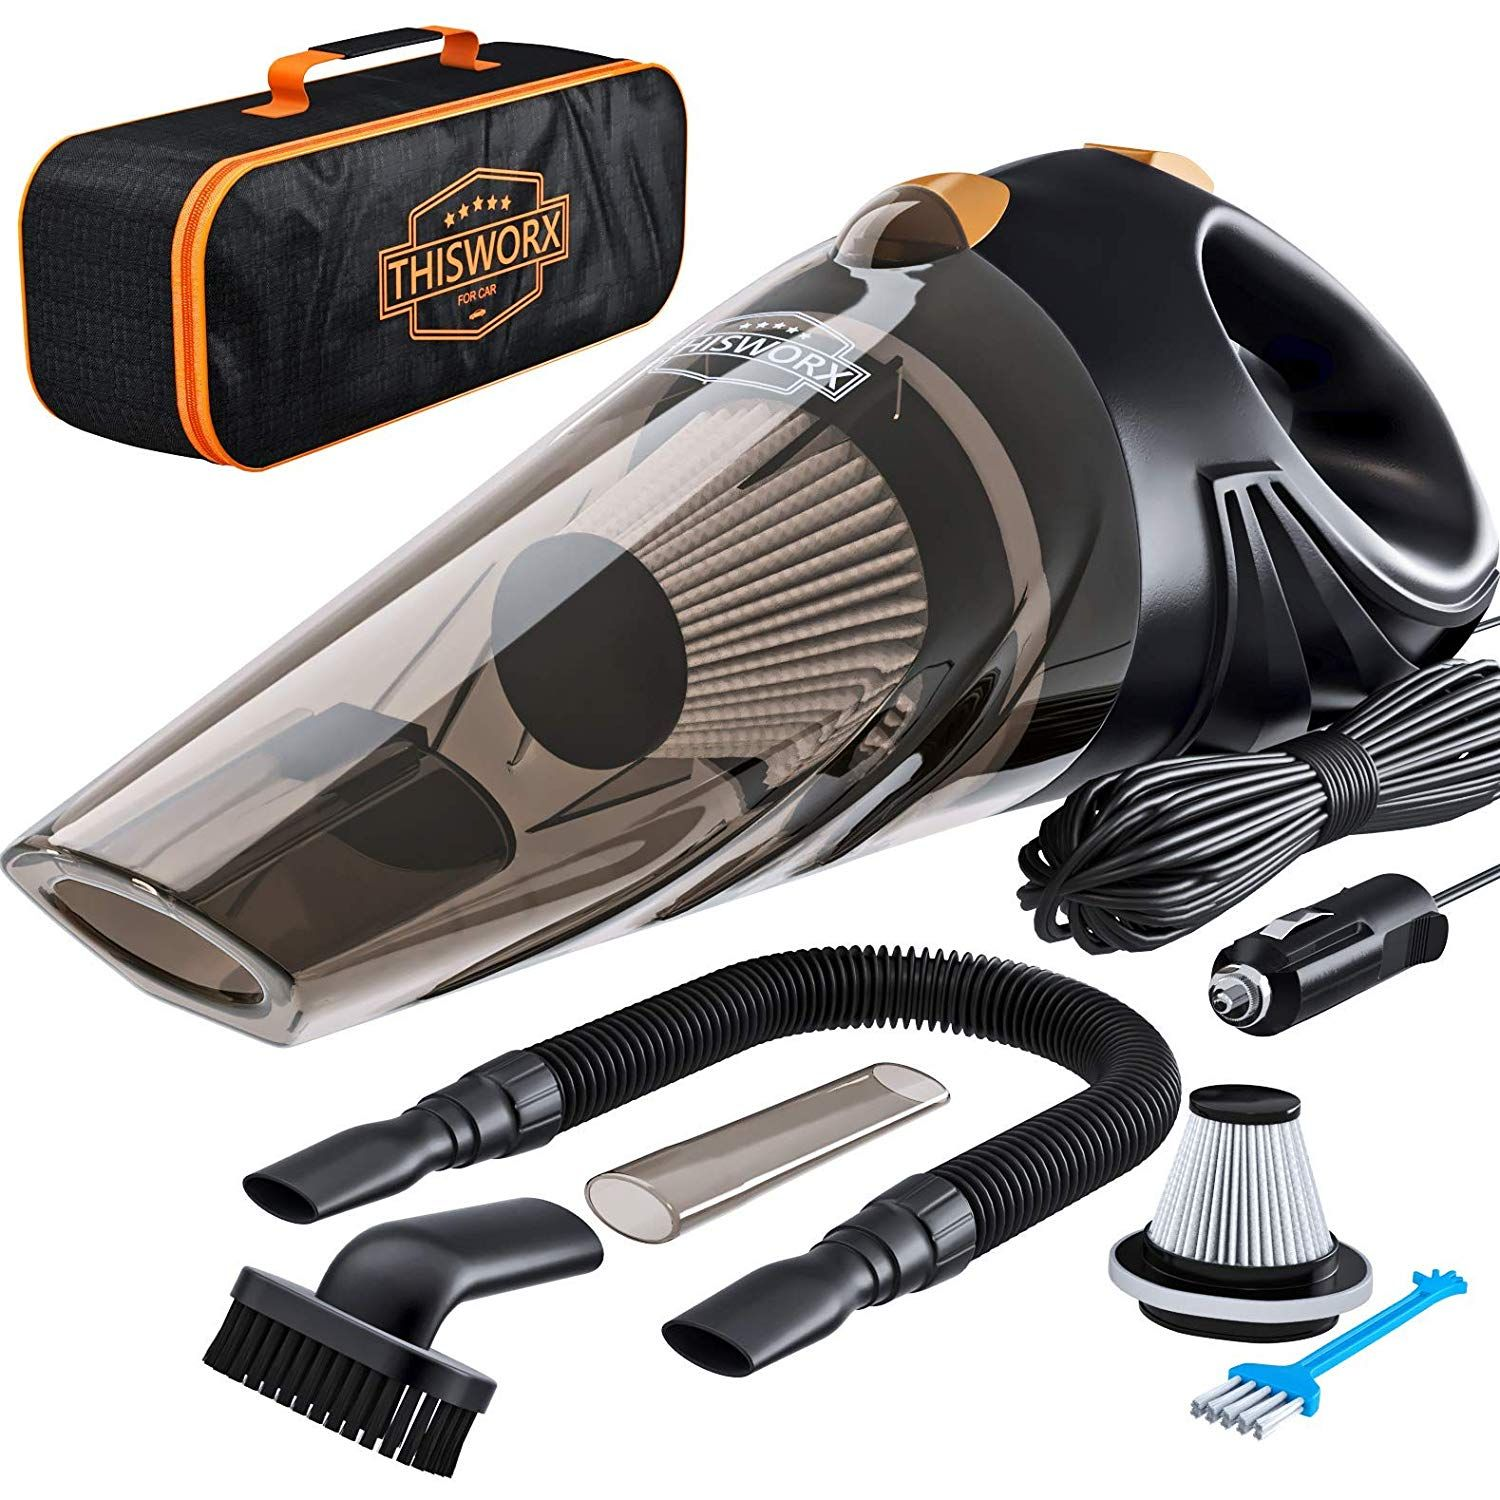 Clean Your Car Like A Pro Save Time And Money And Get Professional Results Yourself Every Time Strong Suction The Car Vacuum S Powerful 106w Motor And S